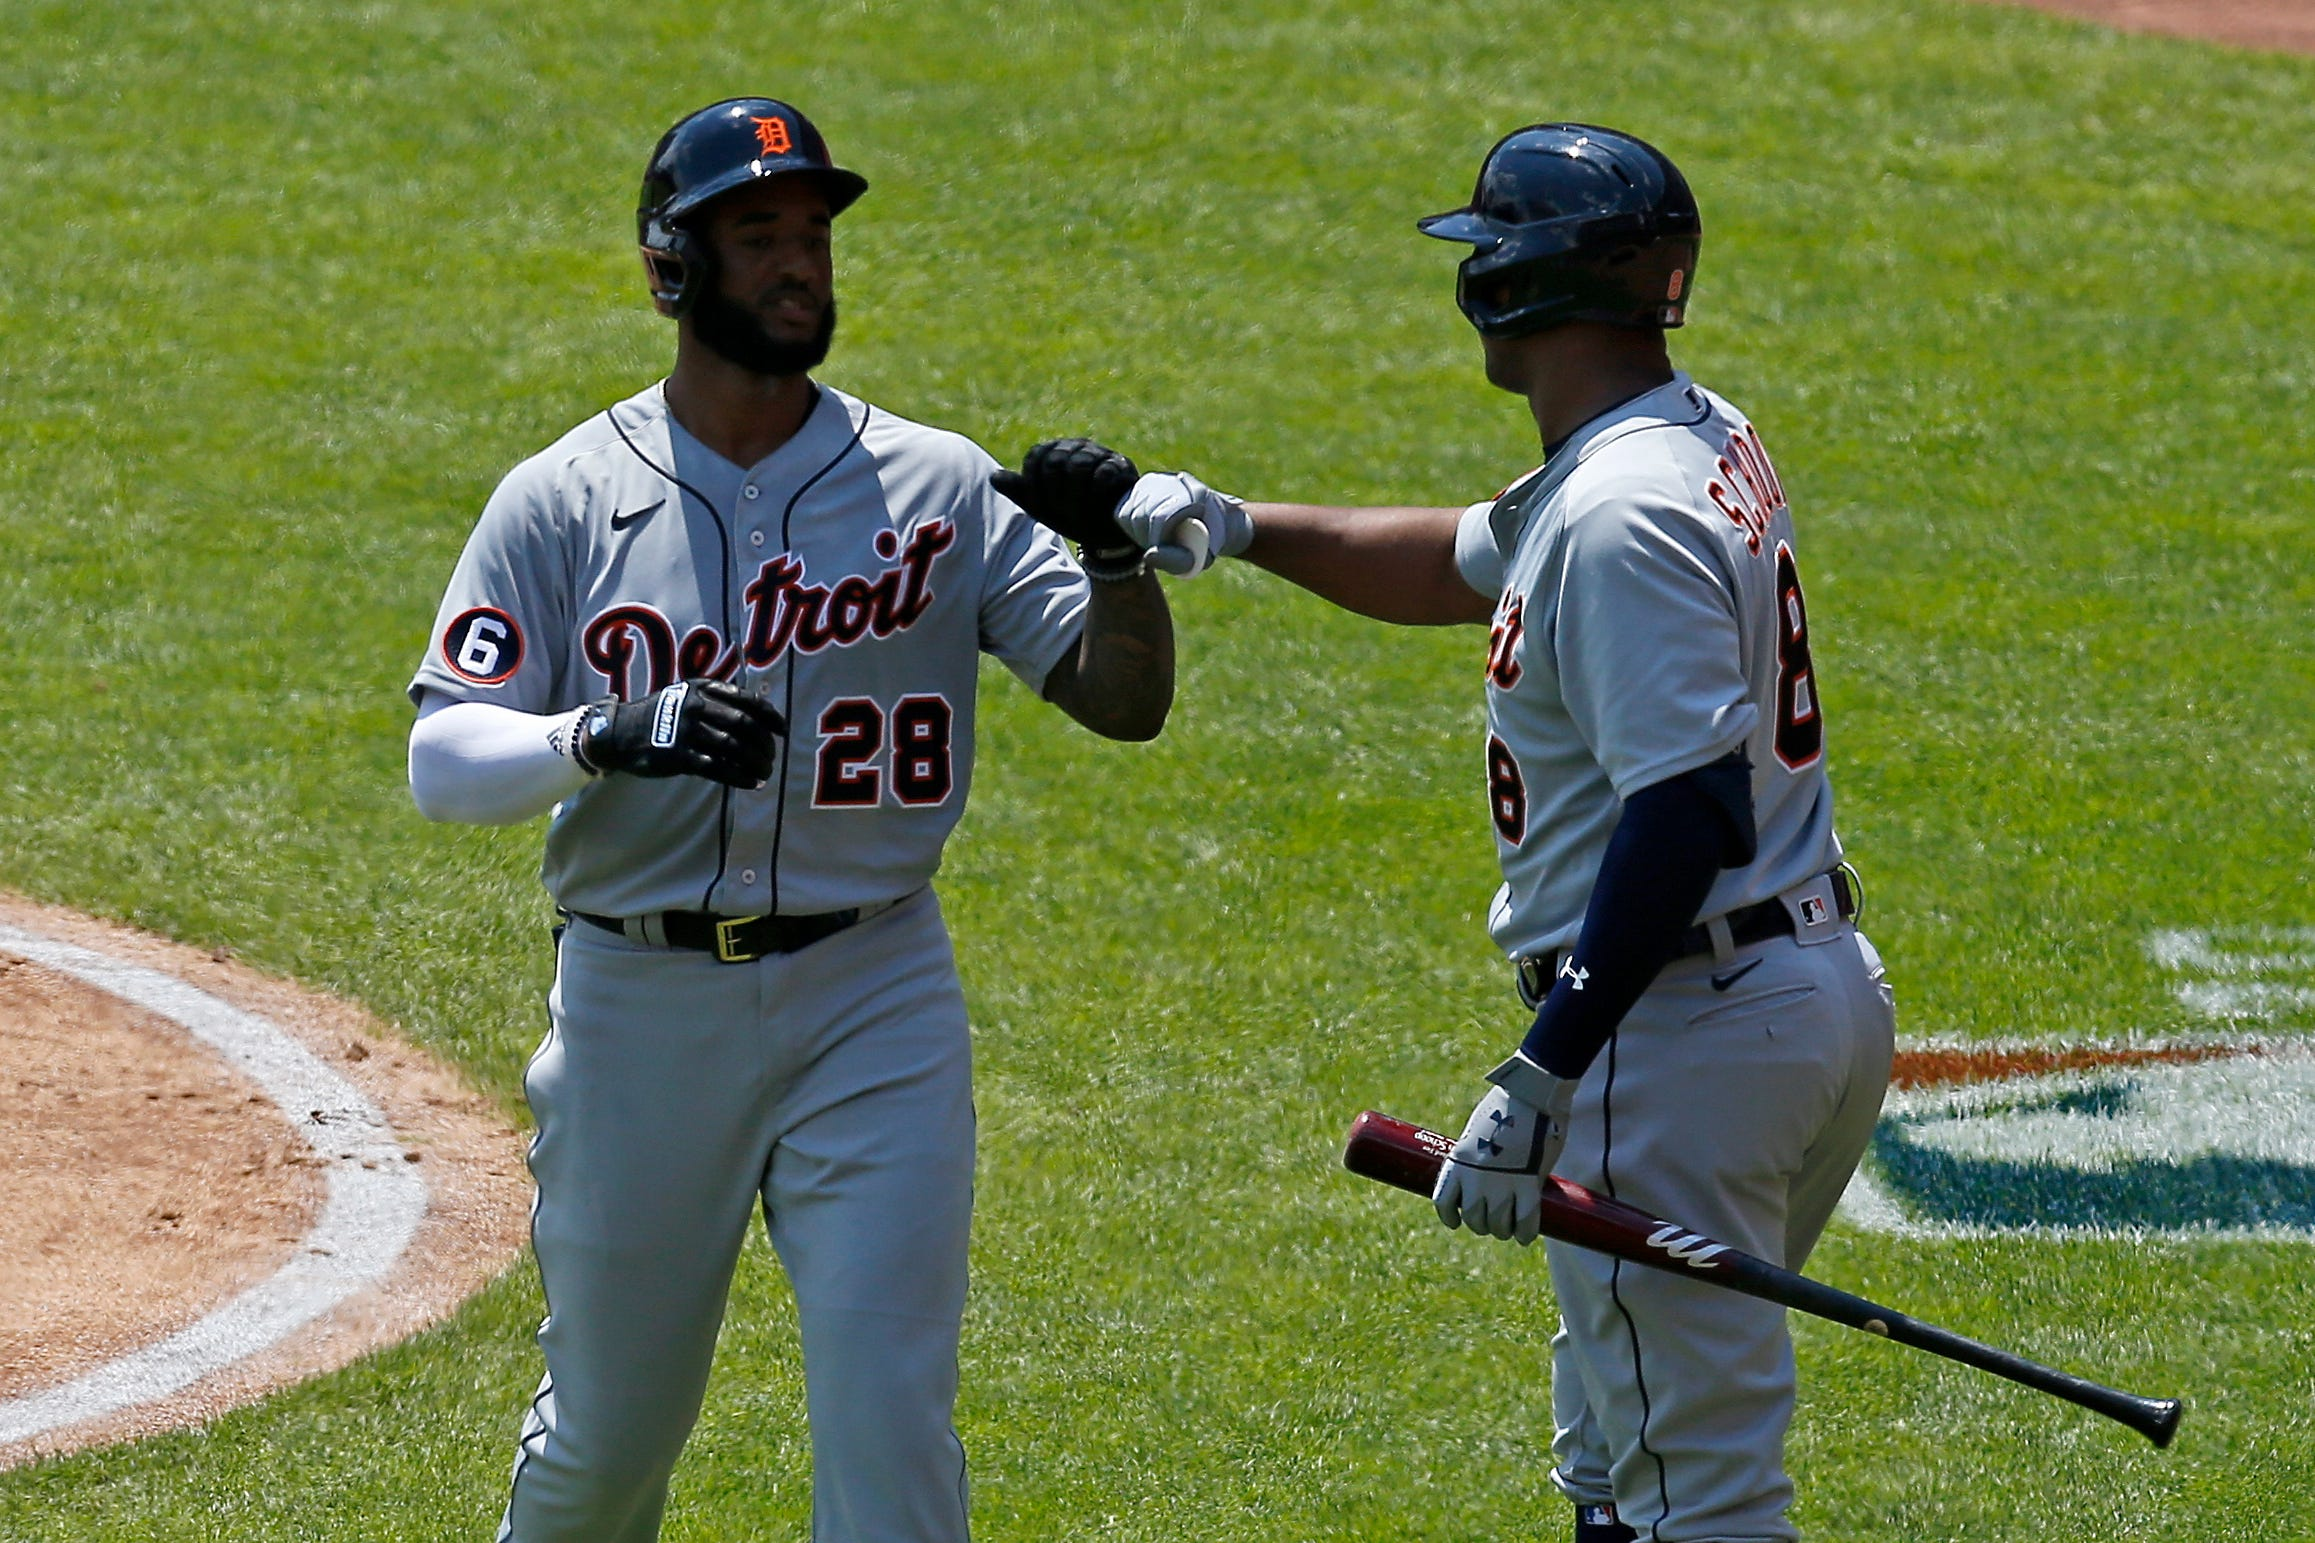 Detroit Tigers shortstop Niko Goodrum (28) fist bumps with second baseman Jonathan Schoop after a solo home run in the third inning vs. the Cincinnati Reds at Great American Ball Park in Cincinnati on Sunday, July 26, 2020.